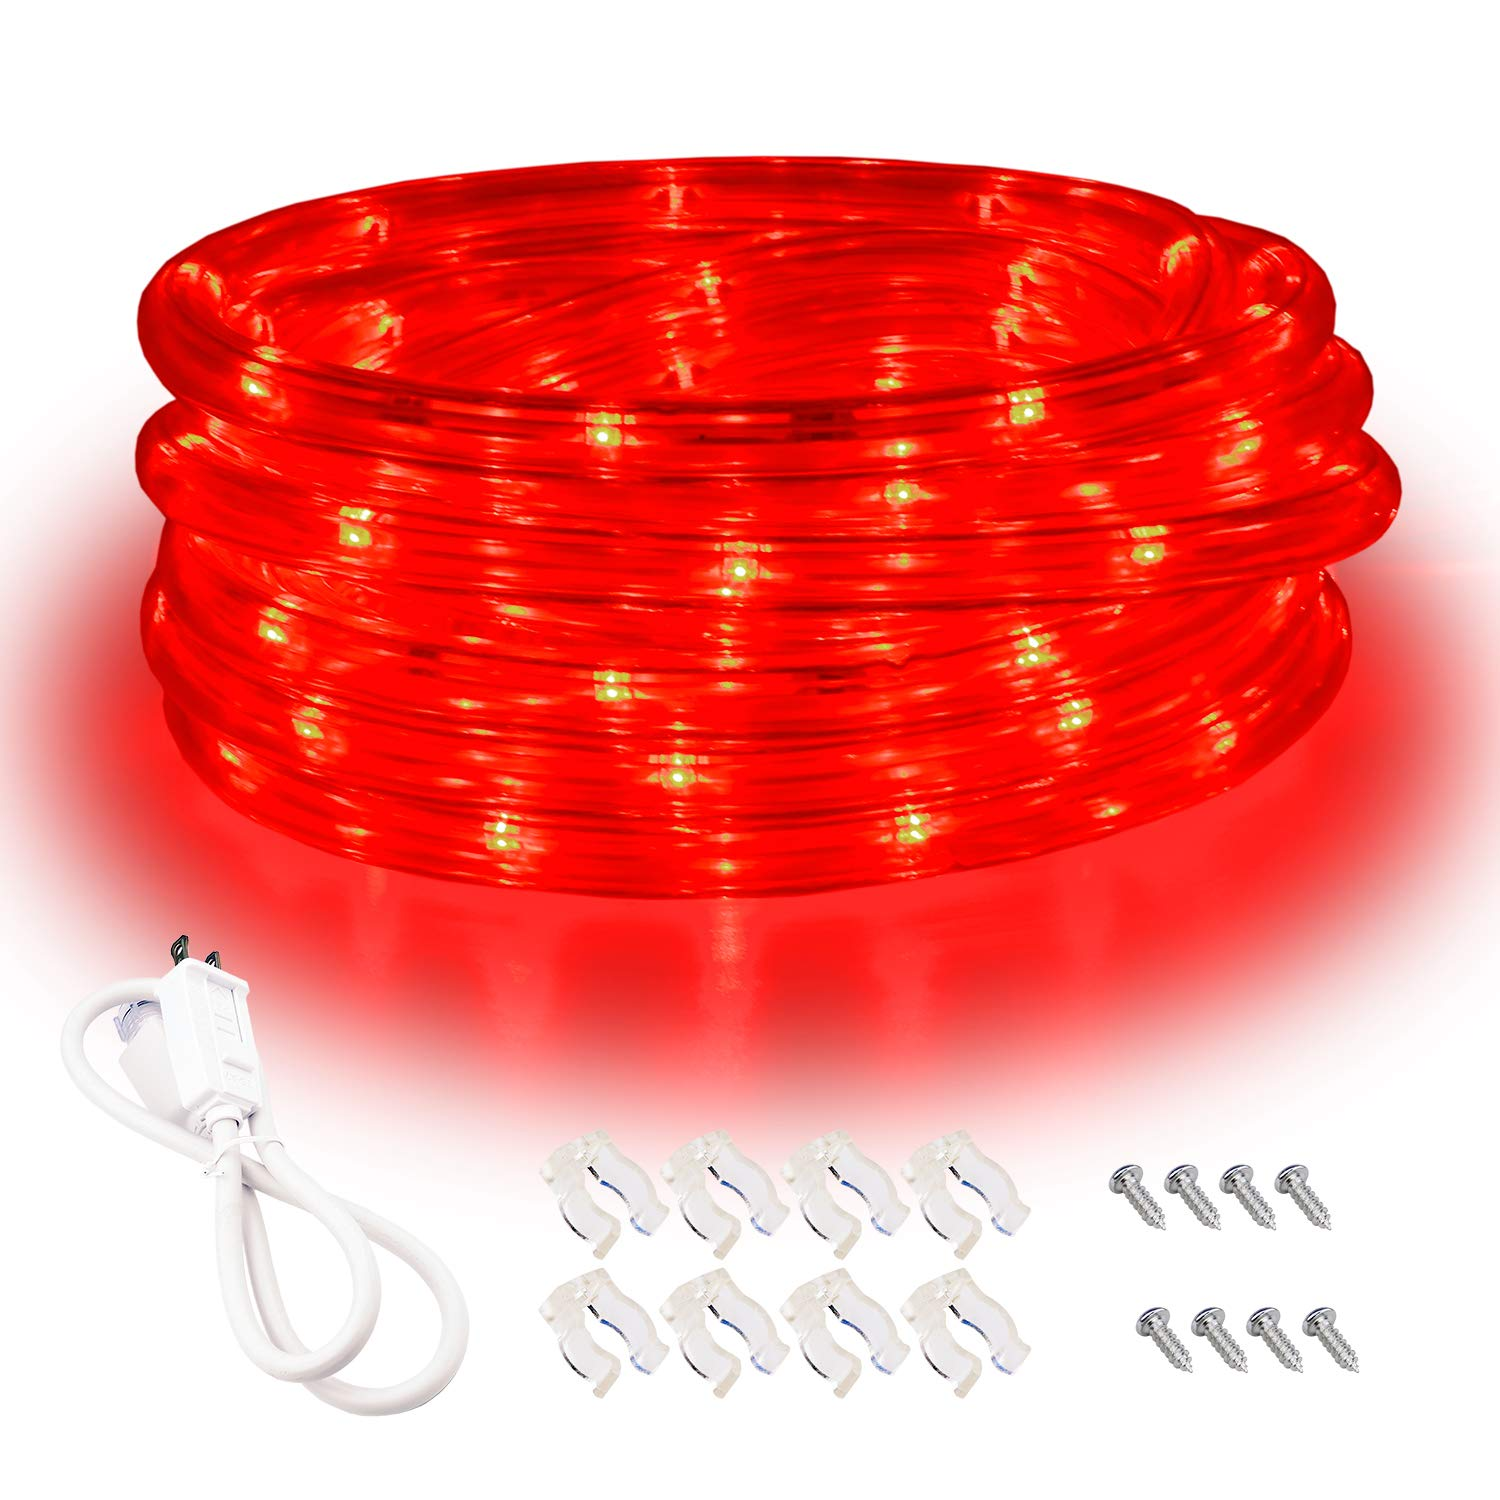 Red LED Lights, 16ft Rope Lights, Flexible and Connectable Strip Lighting, Waterproof for Indoor Outdoor Use, 360 Beam Angle, High Brightness for Home Christmas Thanksgiving Halloween by Areful